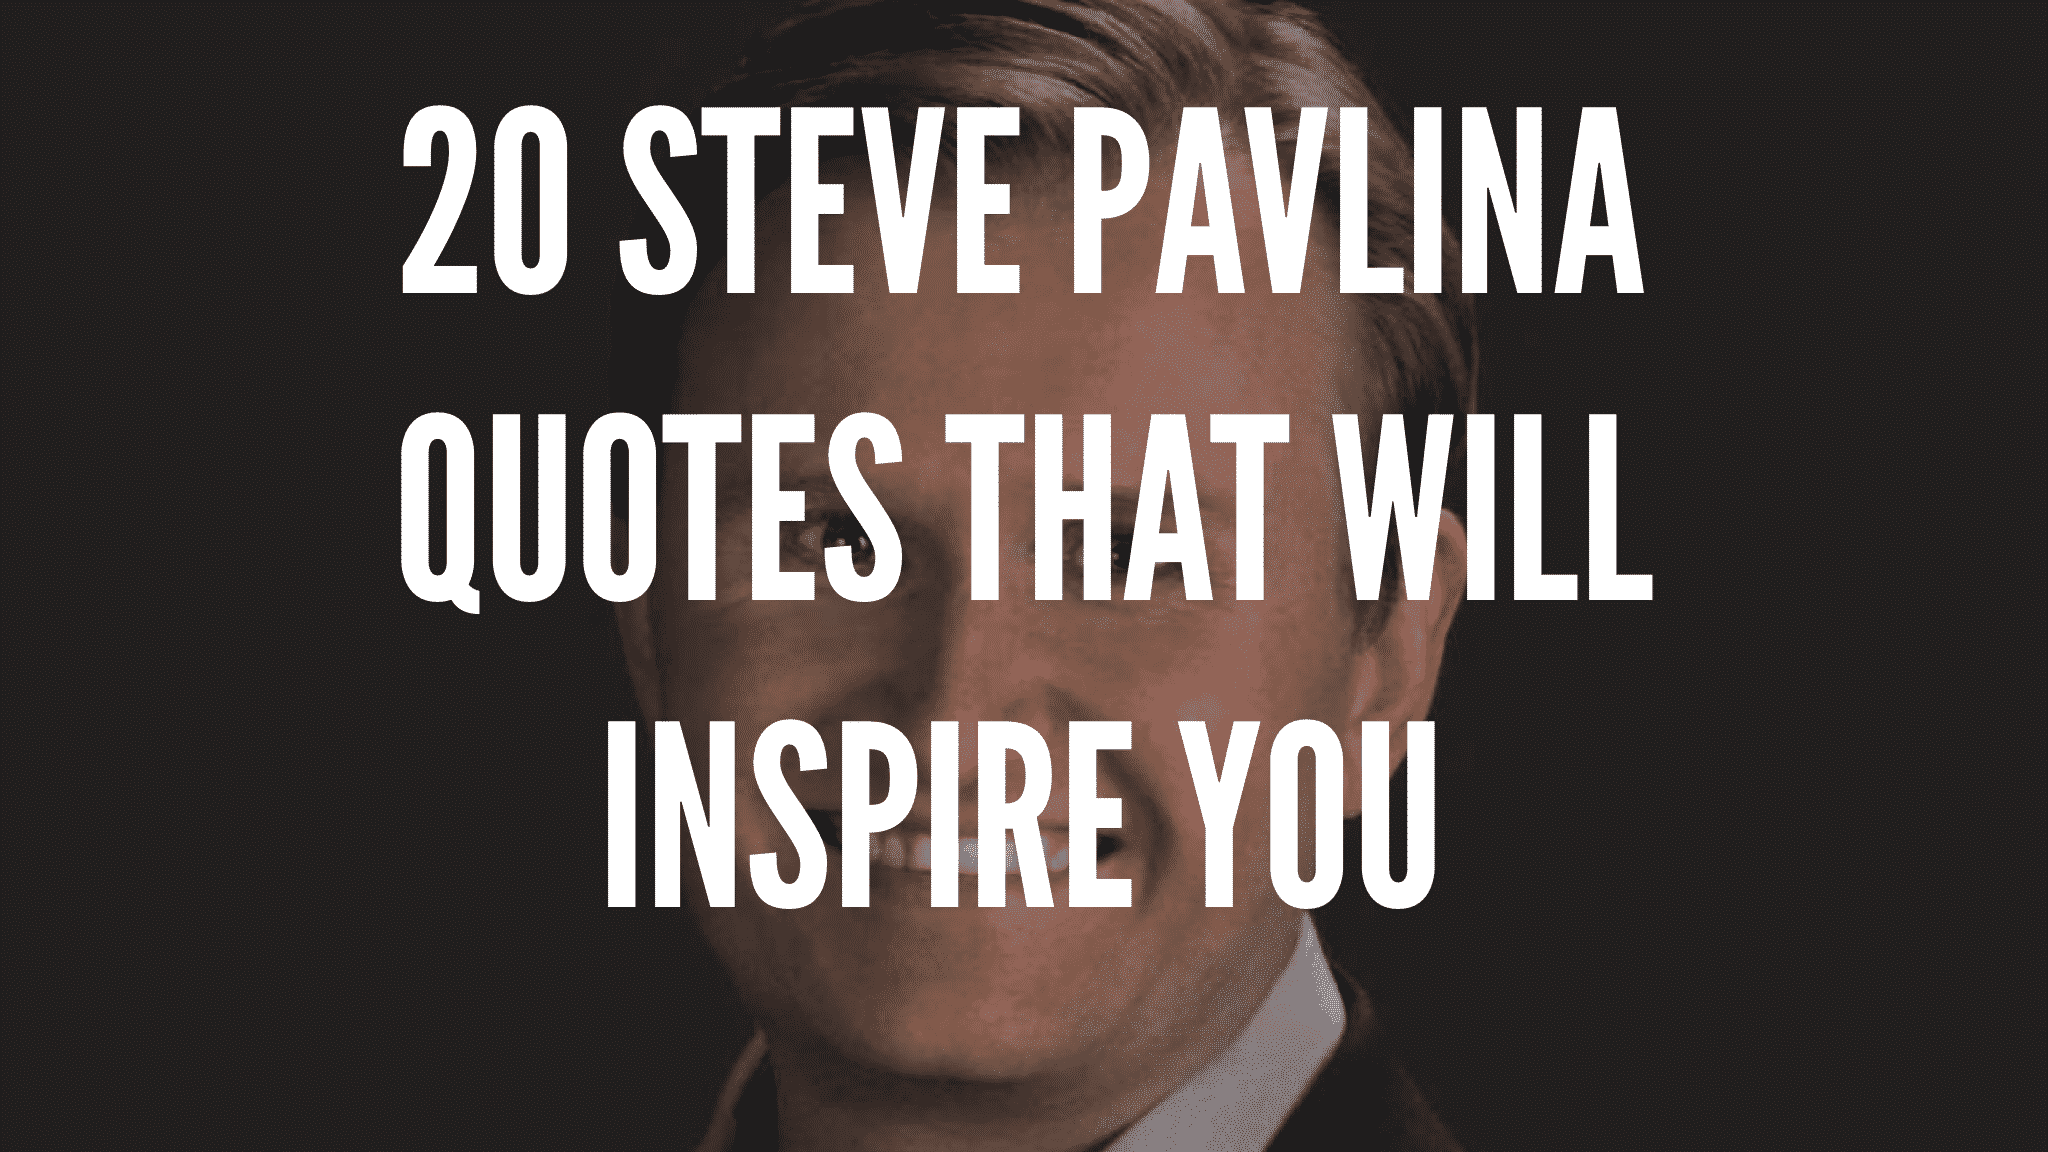 20 Steve Pavlina Quotes That Will Inspire You